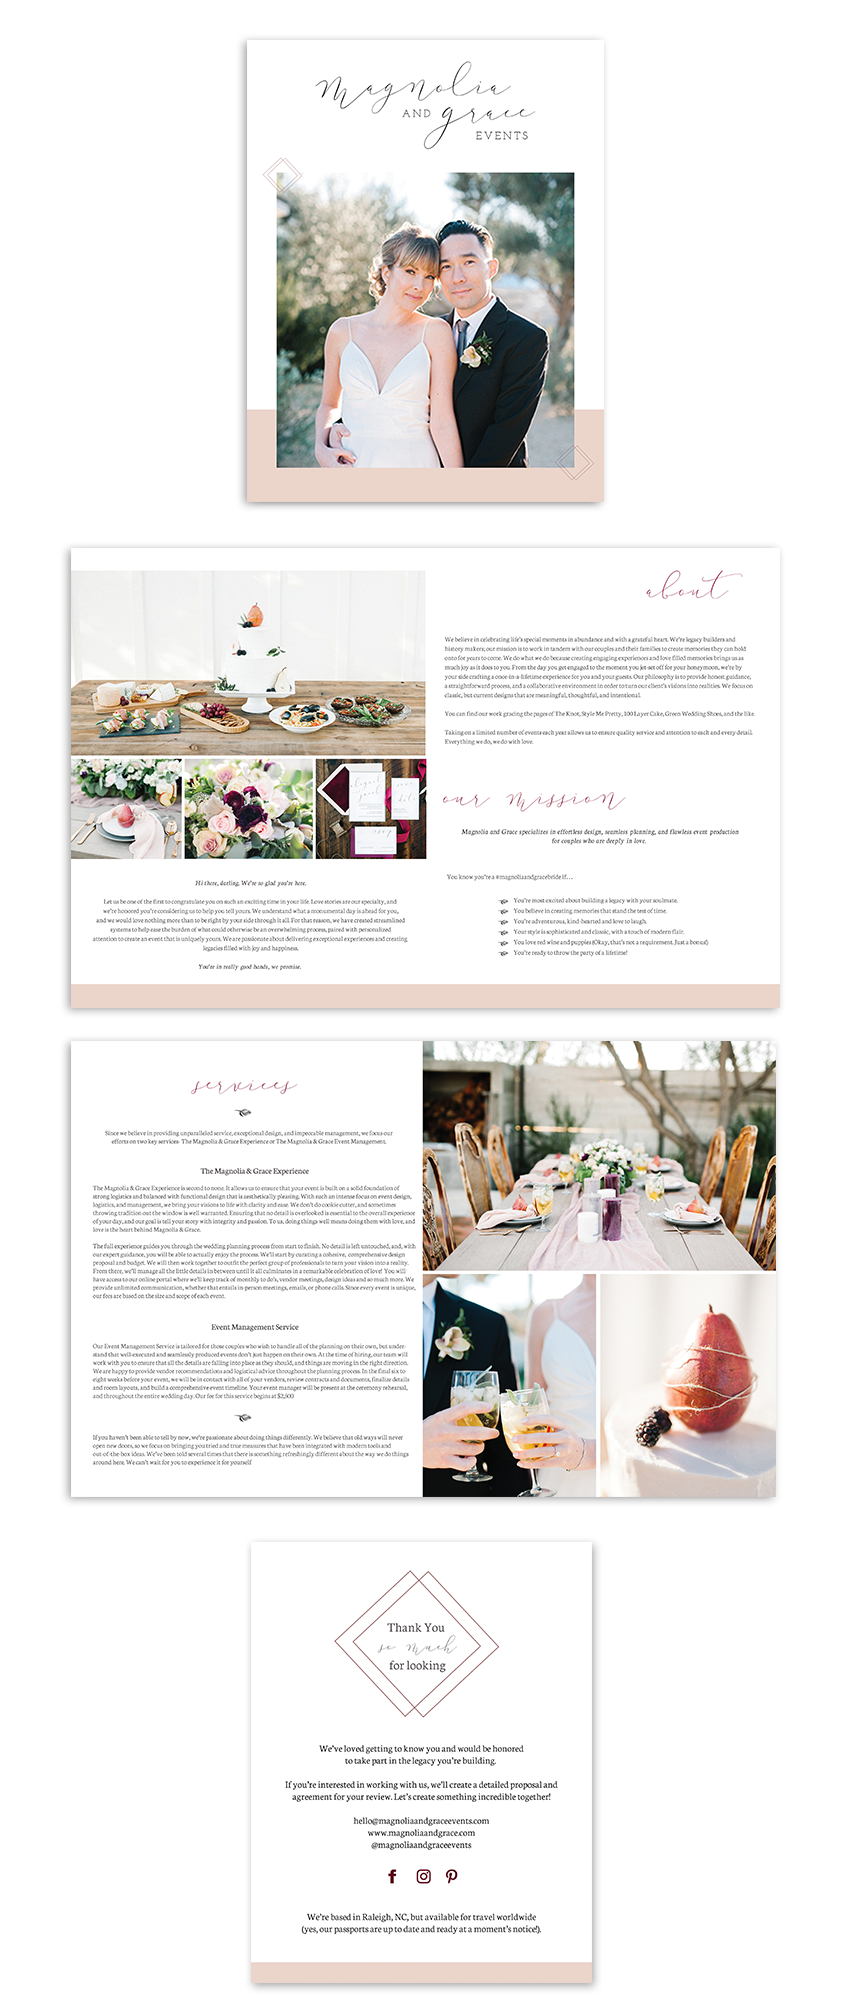 Magnolia & Grace Events Client Welcome Packet | Writefully Simple